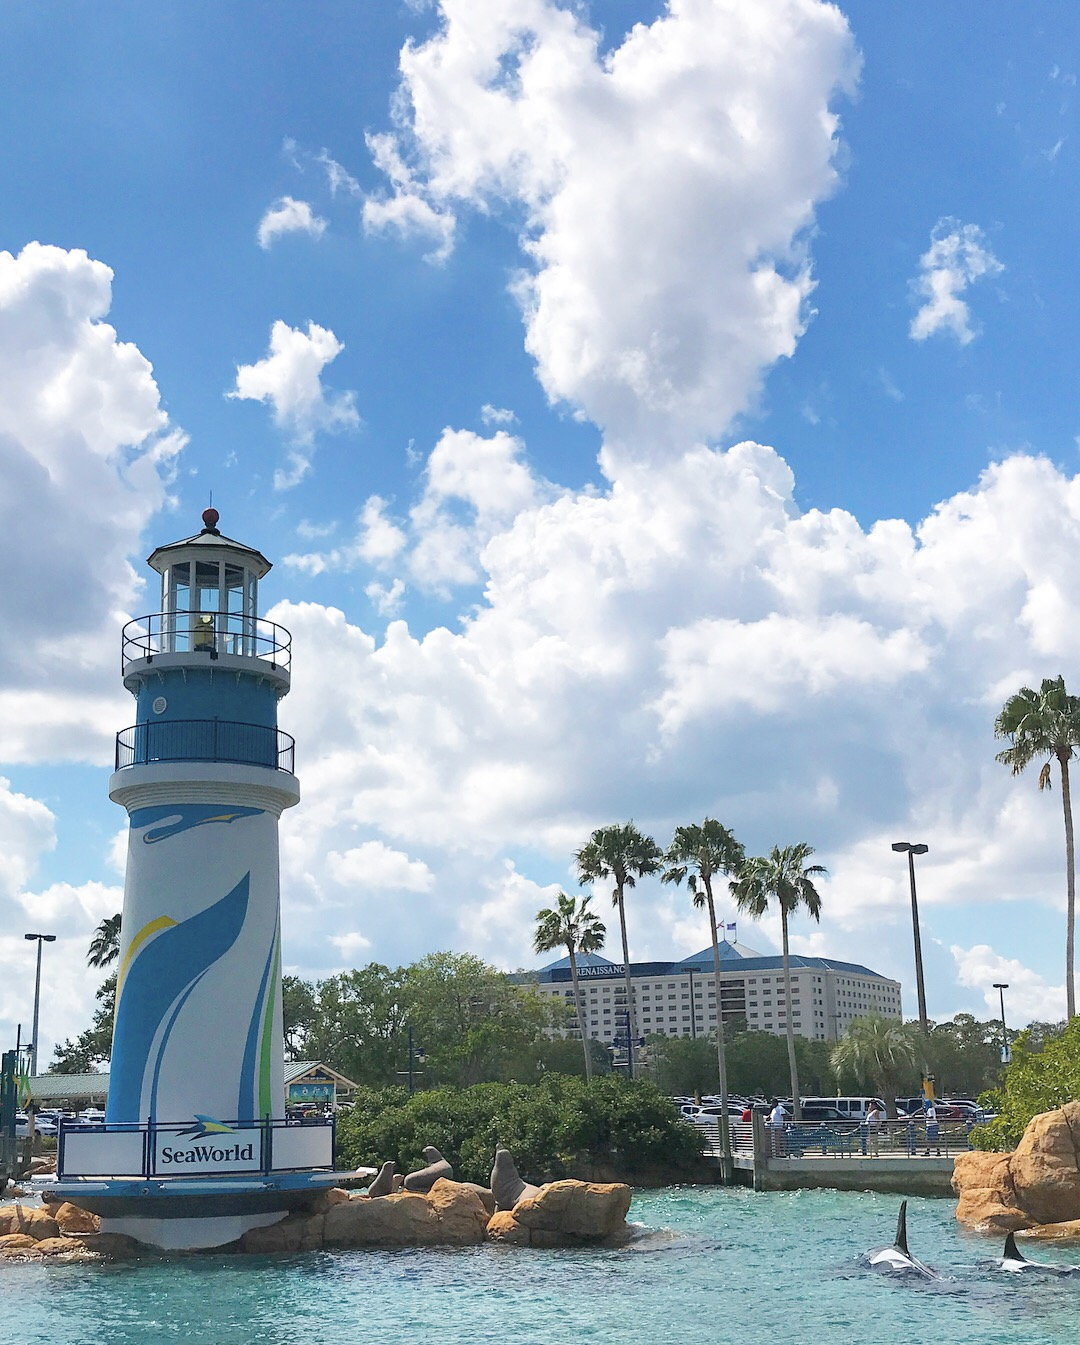 SeaWorld Orlando Welcome Harbour Vertical